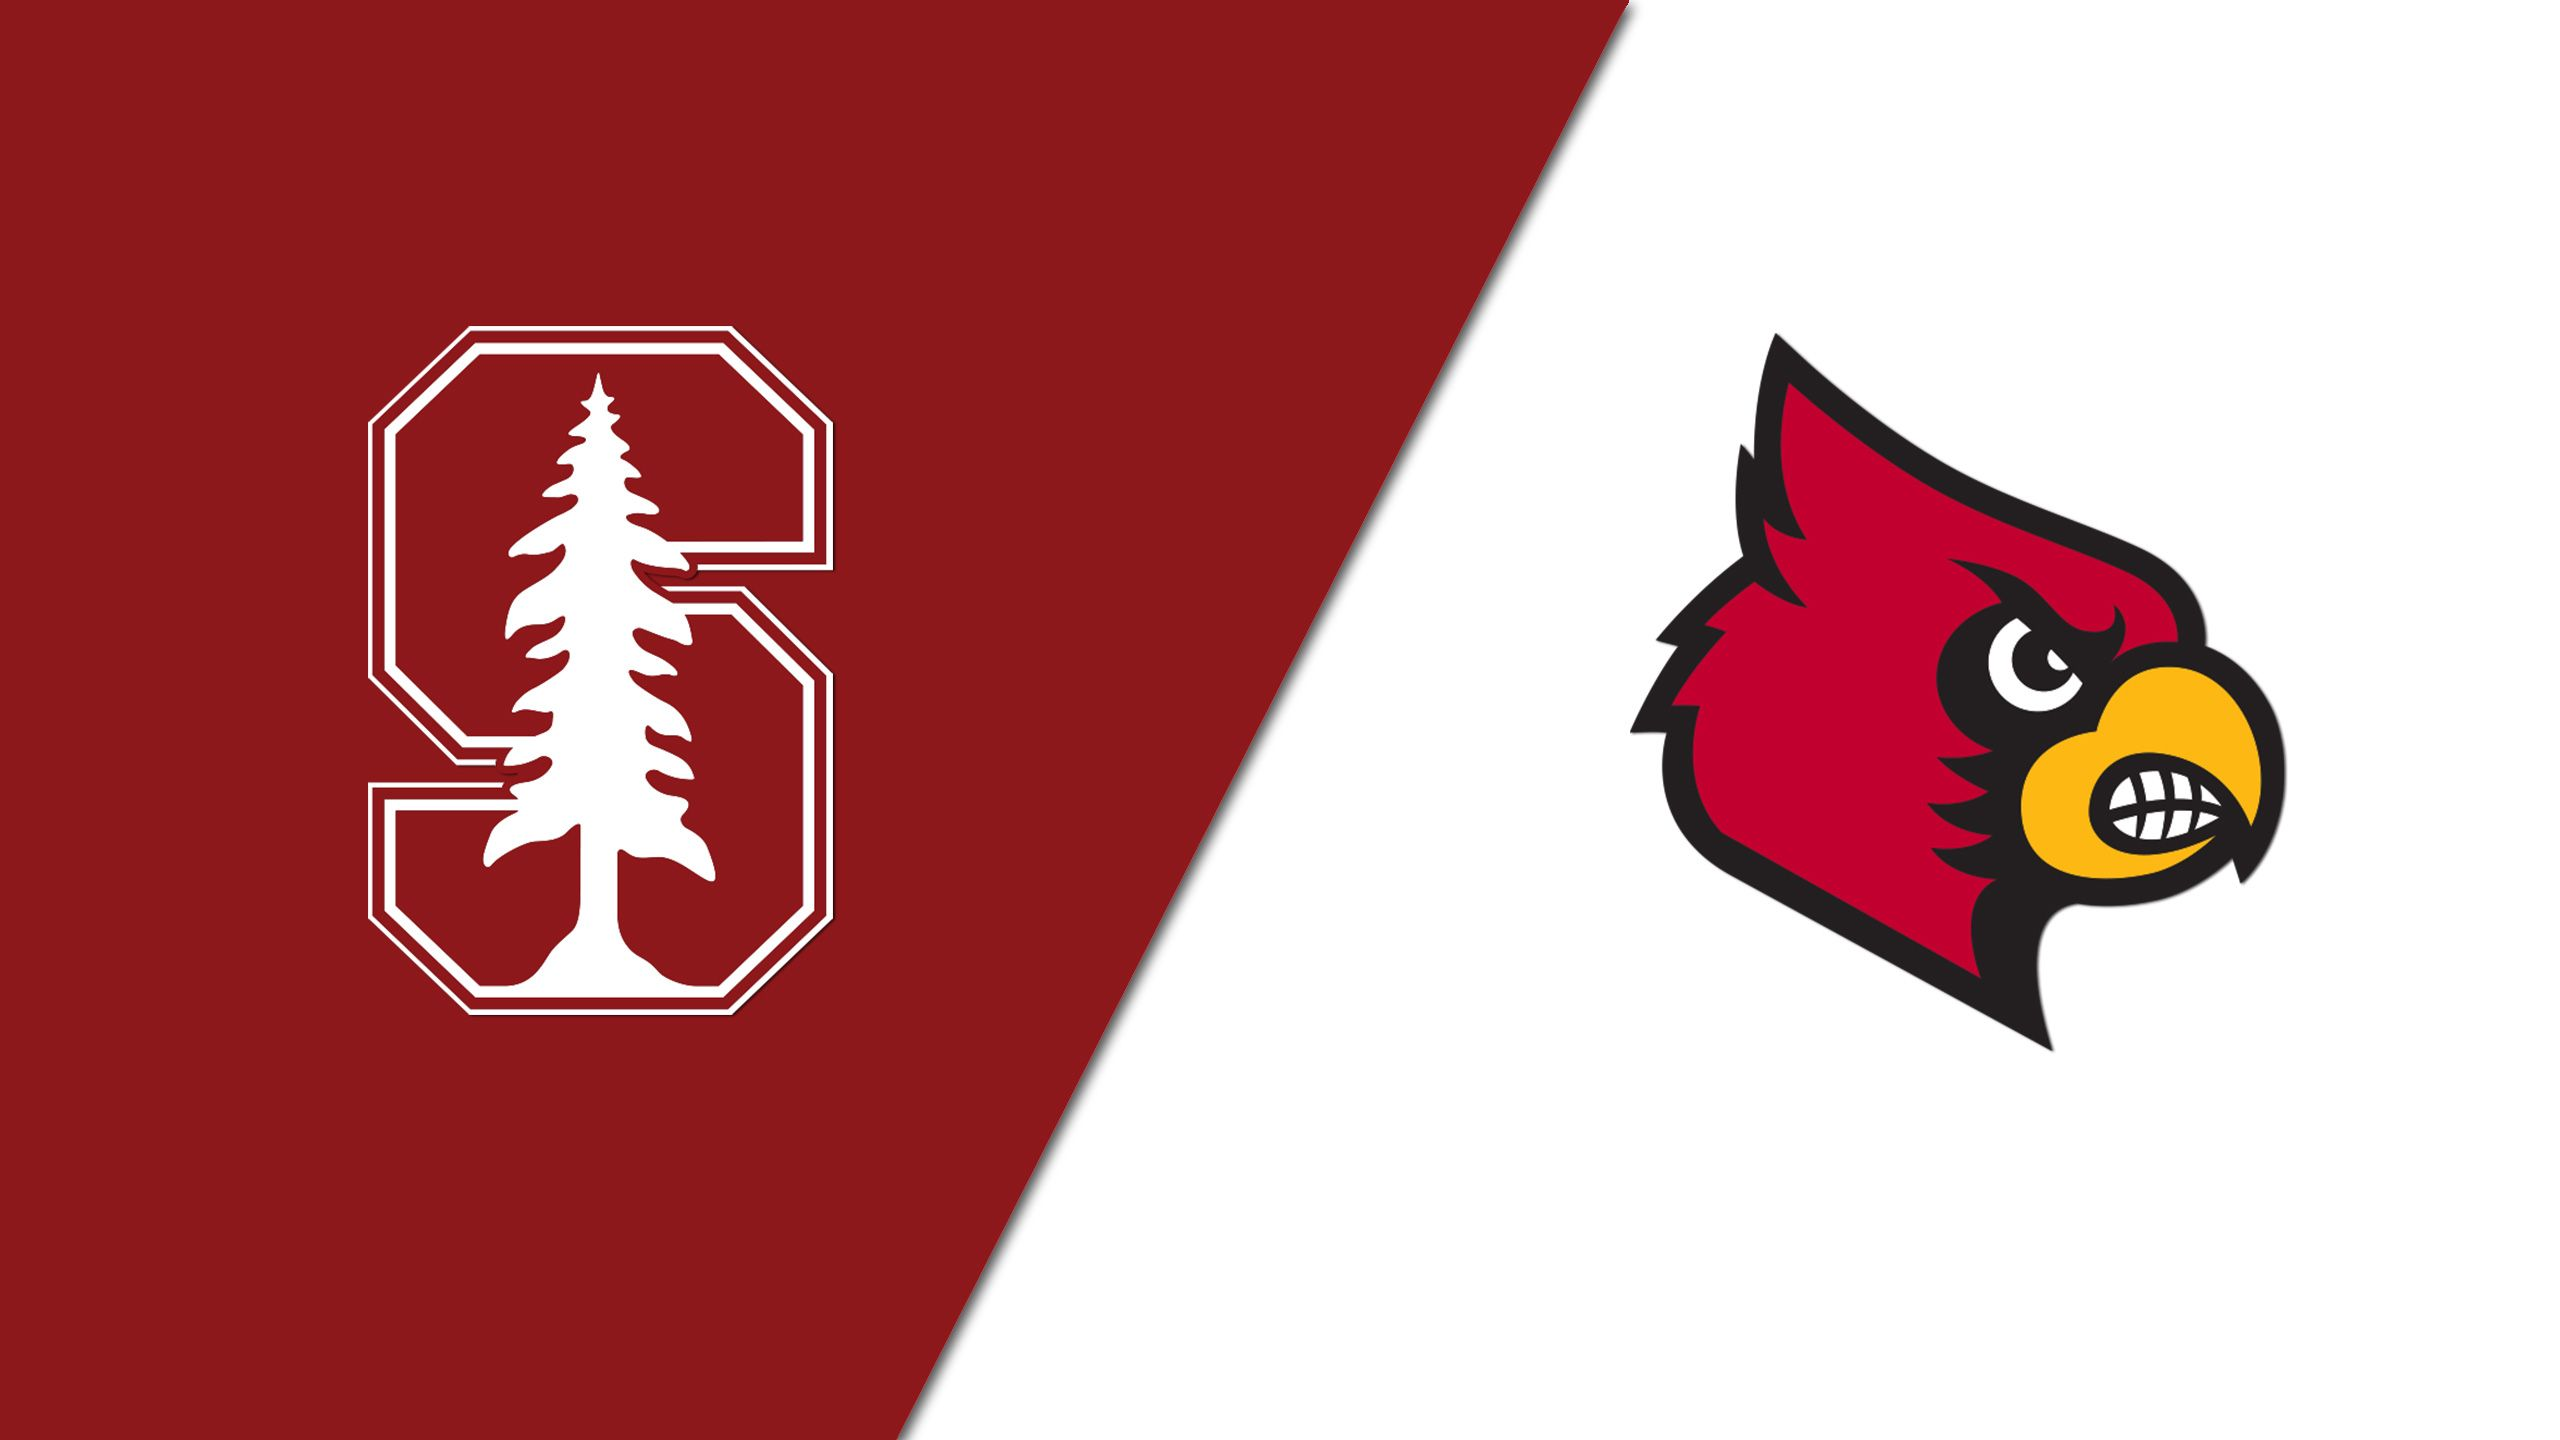 #4 Stanford vs. #1 Louisville (Regional Semifinal) (NCAA Women's Basketball Championship)